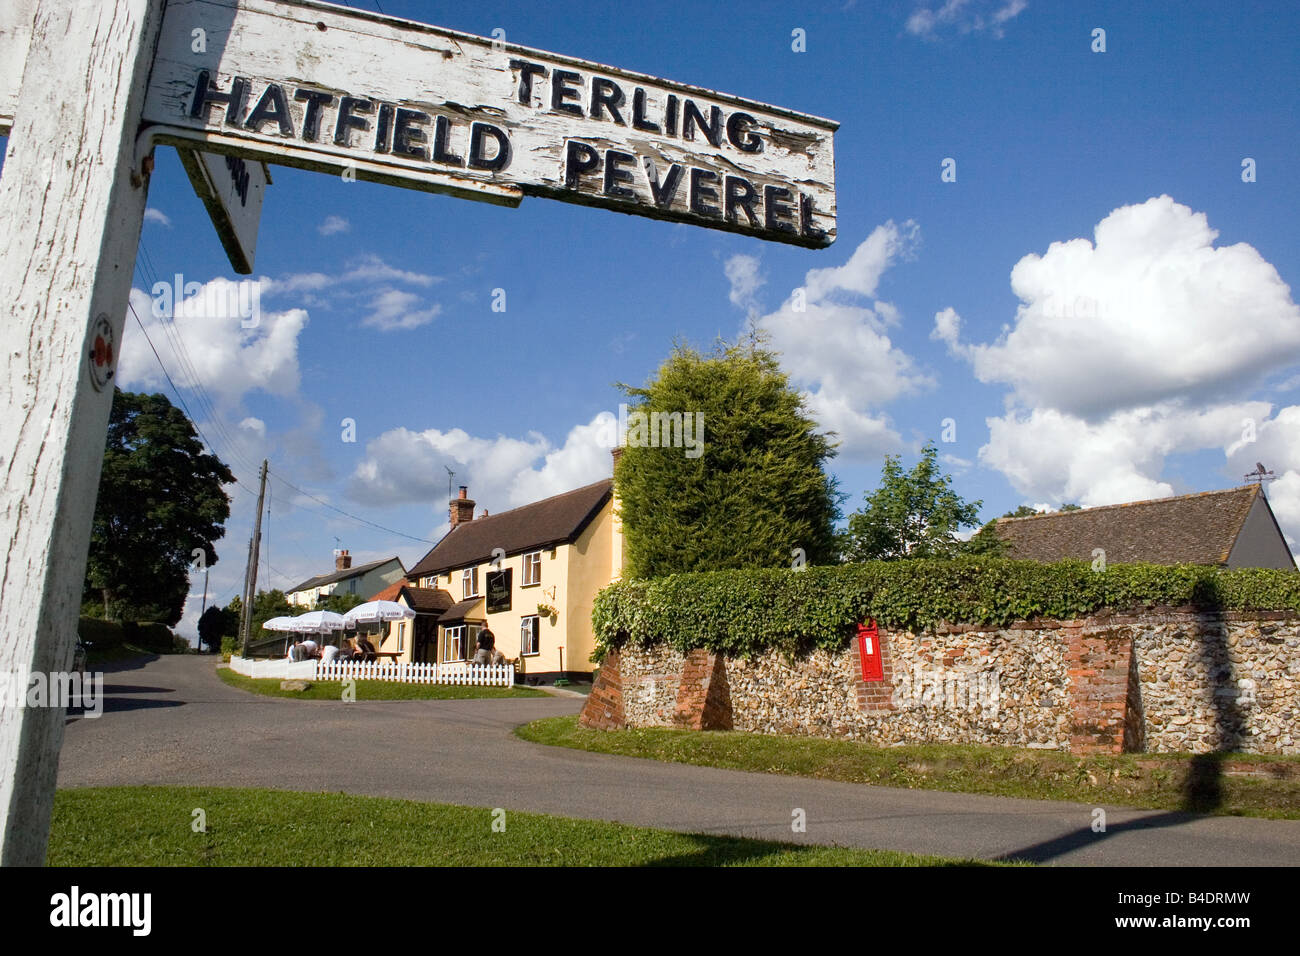 village signpost and the Square Compass pub Fairstead Essex England - Stock Image